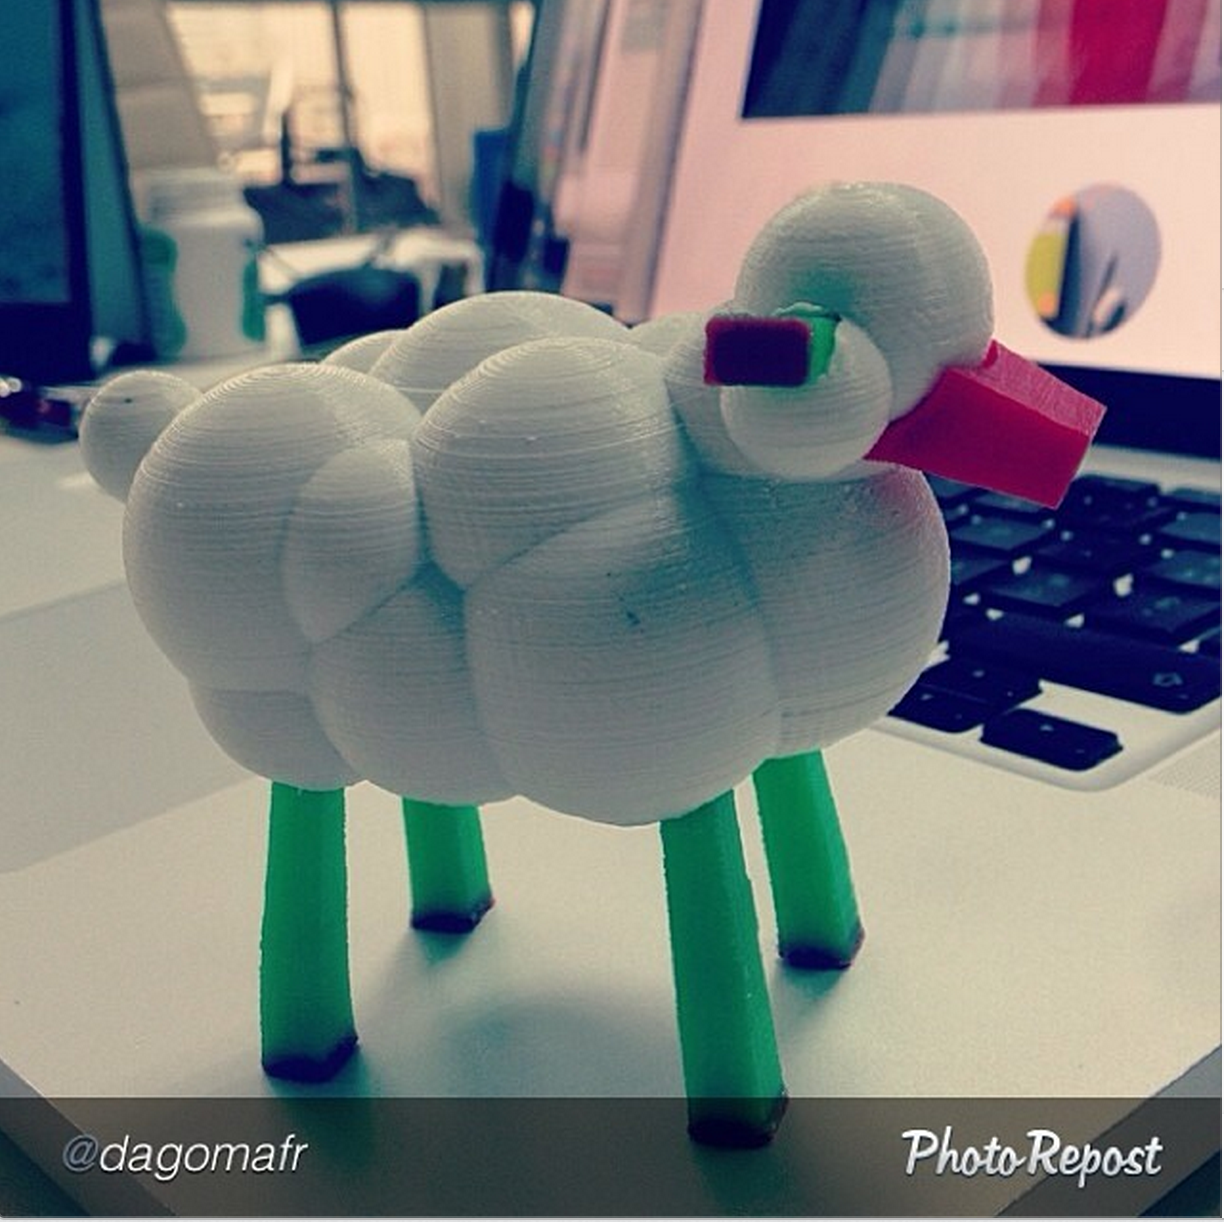 """""""LEO the Maker Prince"""" author Carla Diana makes her last free MakerBot Industries store appearance tomorrow, Feb. 1, at 1pm in Greenwich, CT. http://makezine.com/book-promotions/ People all over the world are downloading and printing characters from LEO, like this sweet sheep. Join in the fun!"""